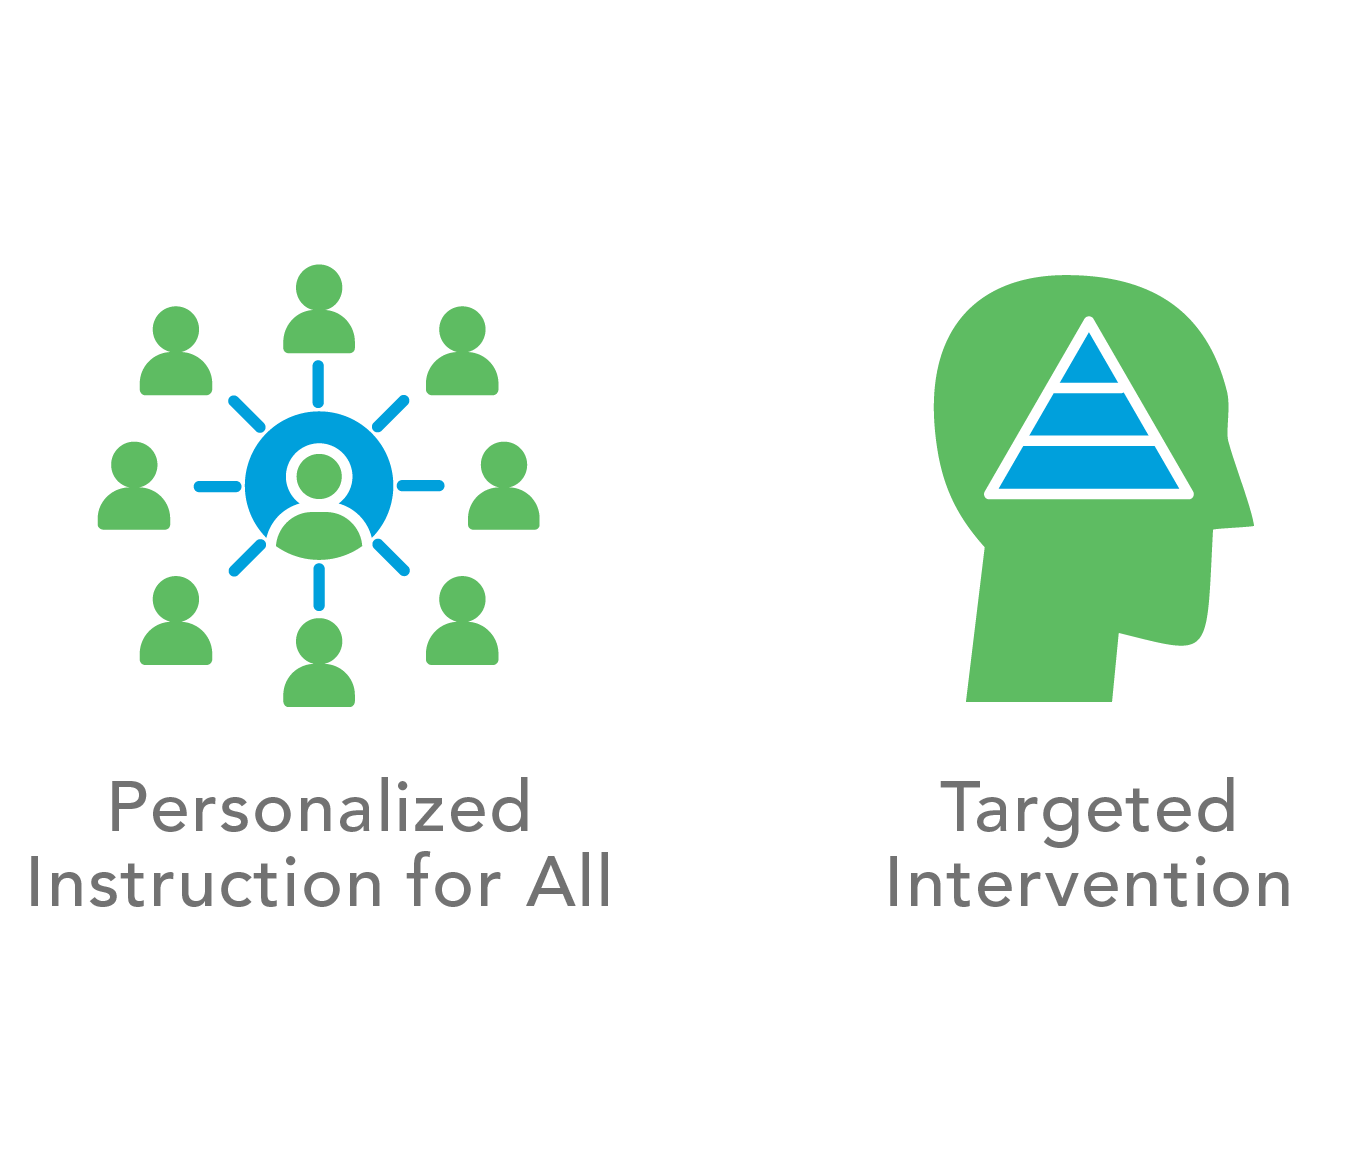 Graphics for personalized instruction for all and targested intervention, two ways Exact Path promotes growth in learning.